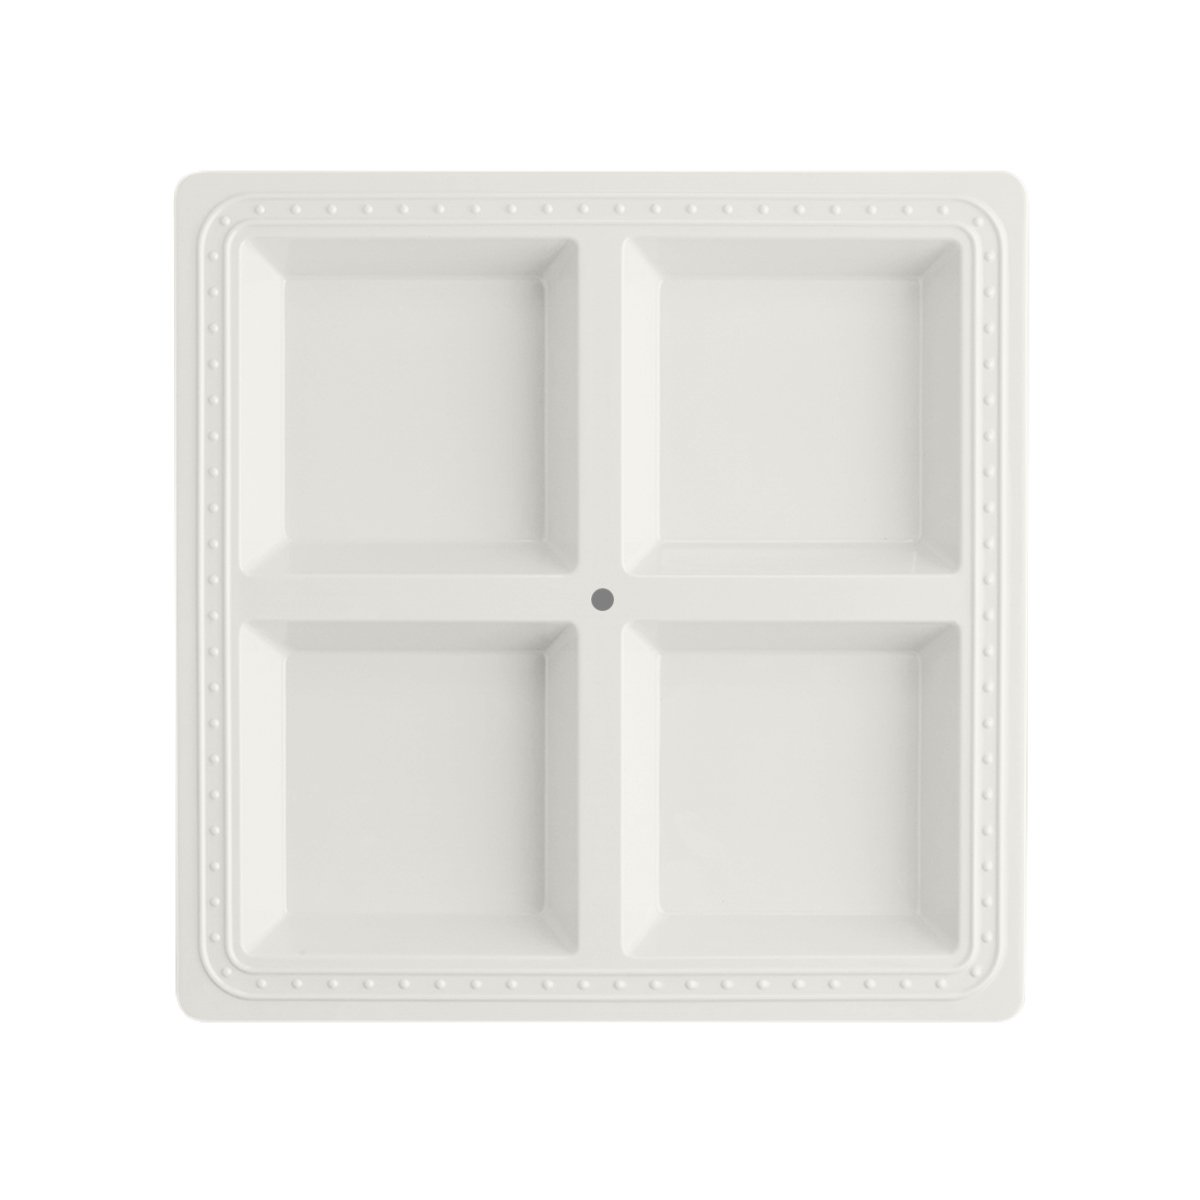 Nora Fleming Melamine Sectional Server - Works With The Entire Nora Fleming Line